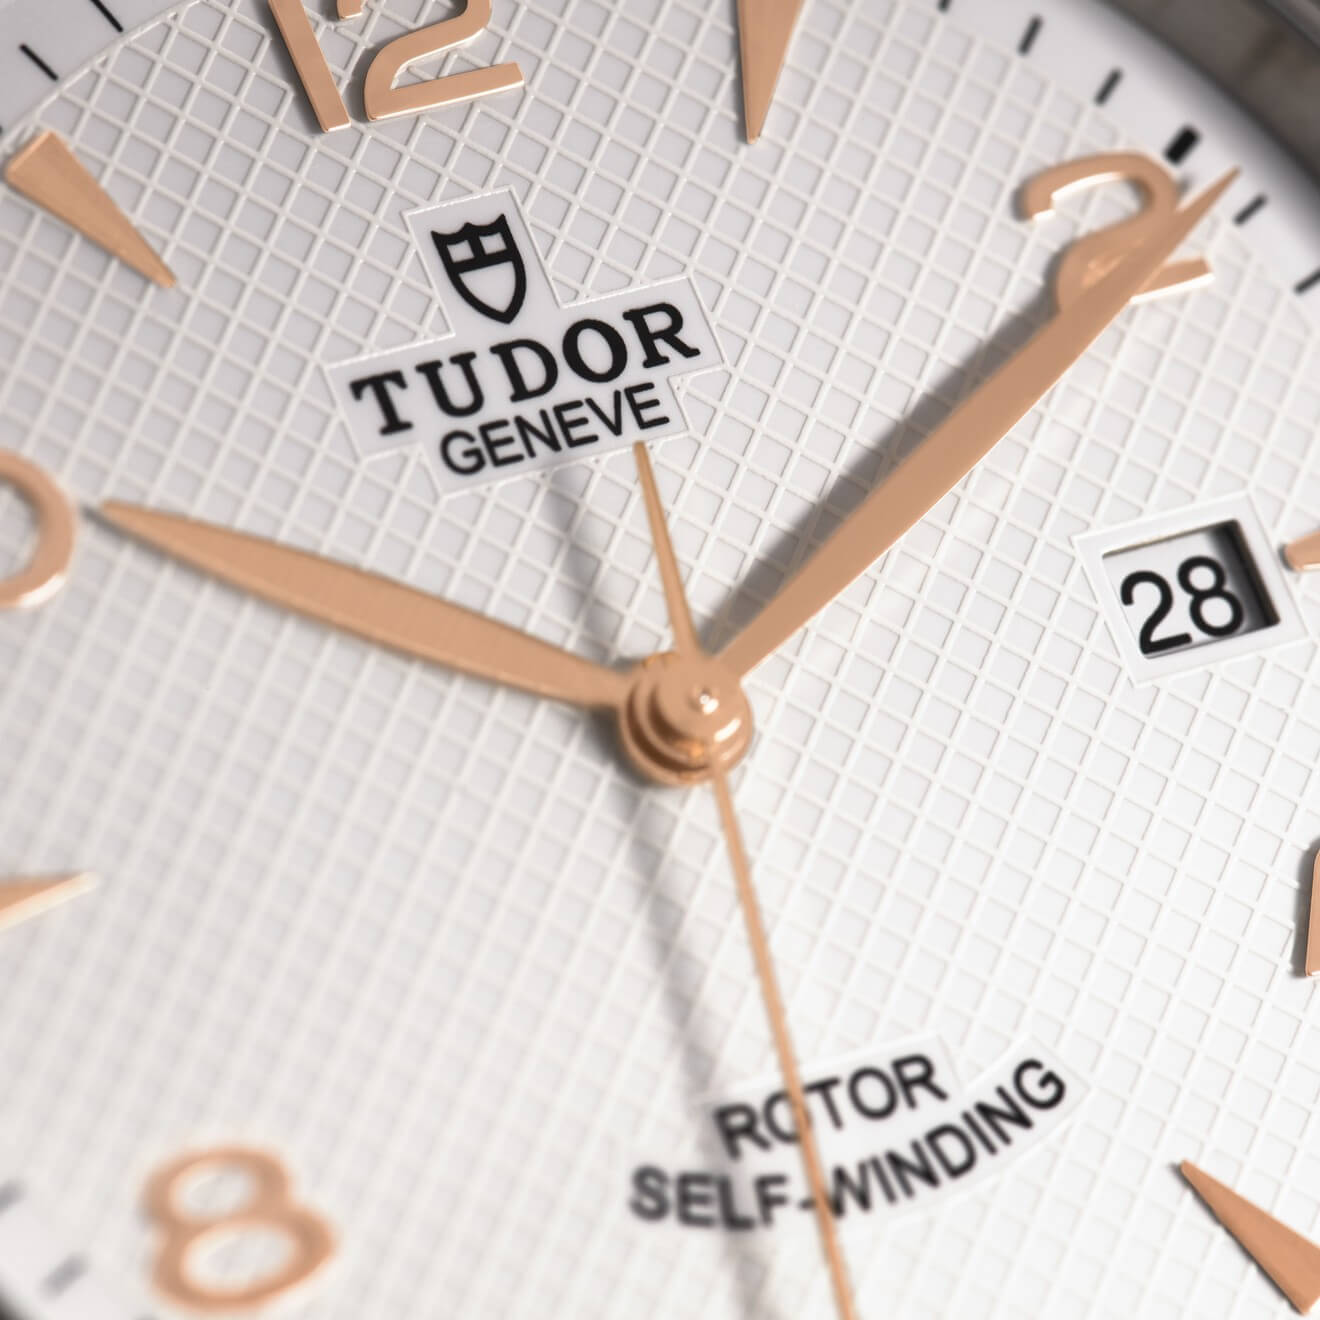 Tudor 1926 Embossed Dial - Mamic 1970